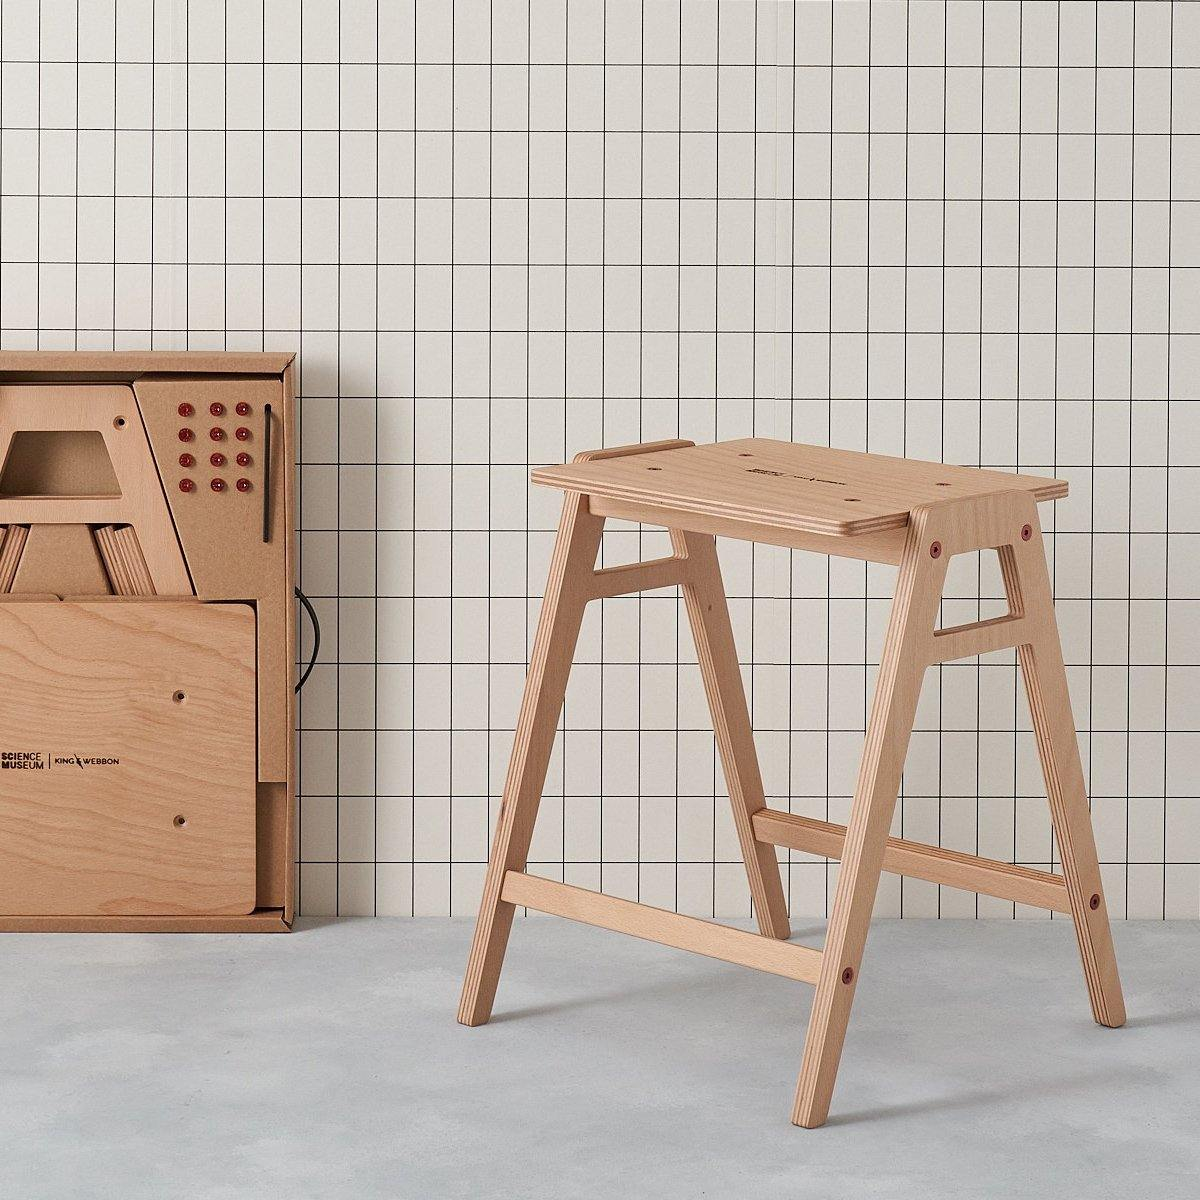 LDN Stool Lab KW3 SOR 14